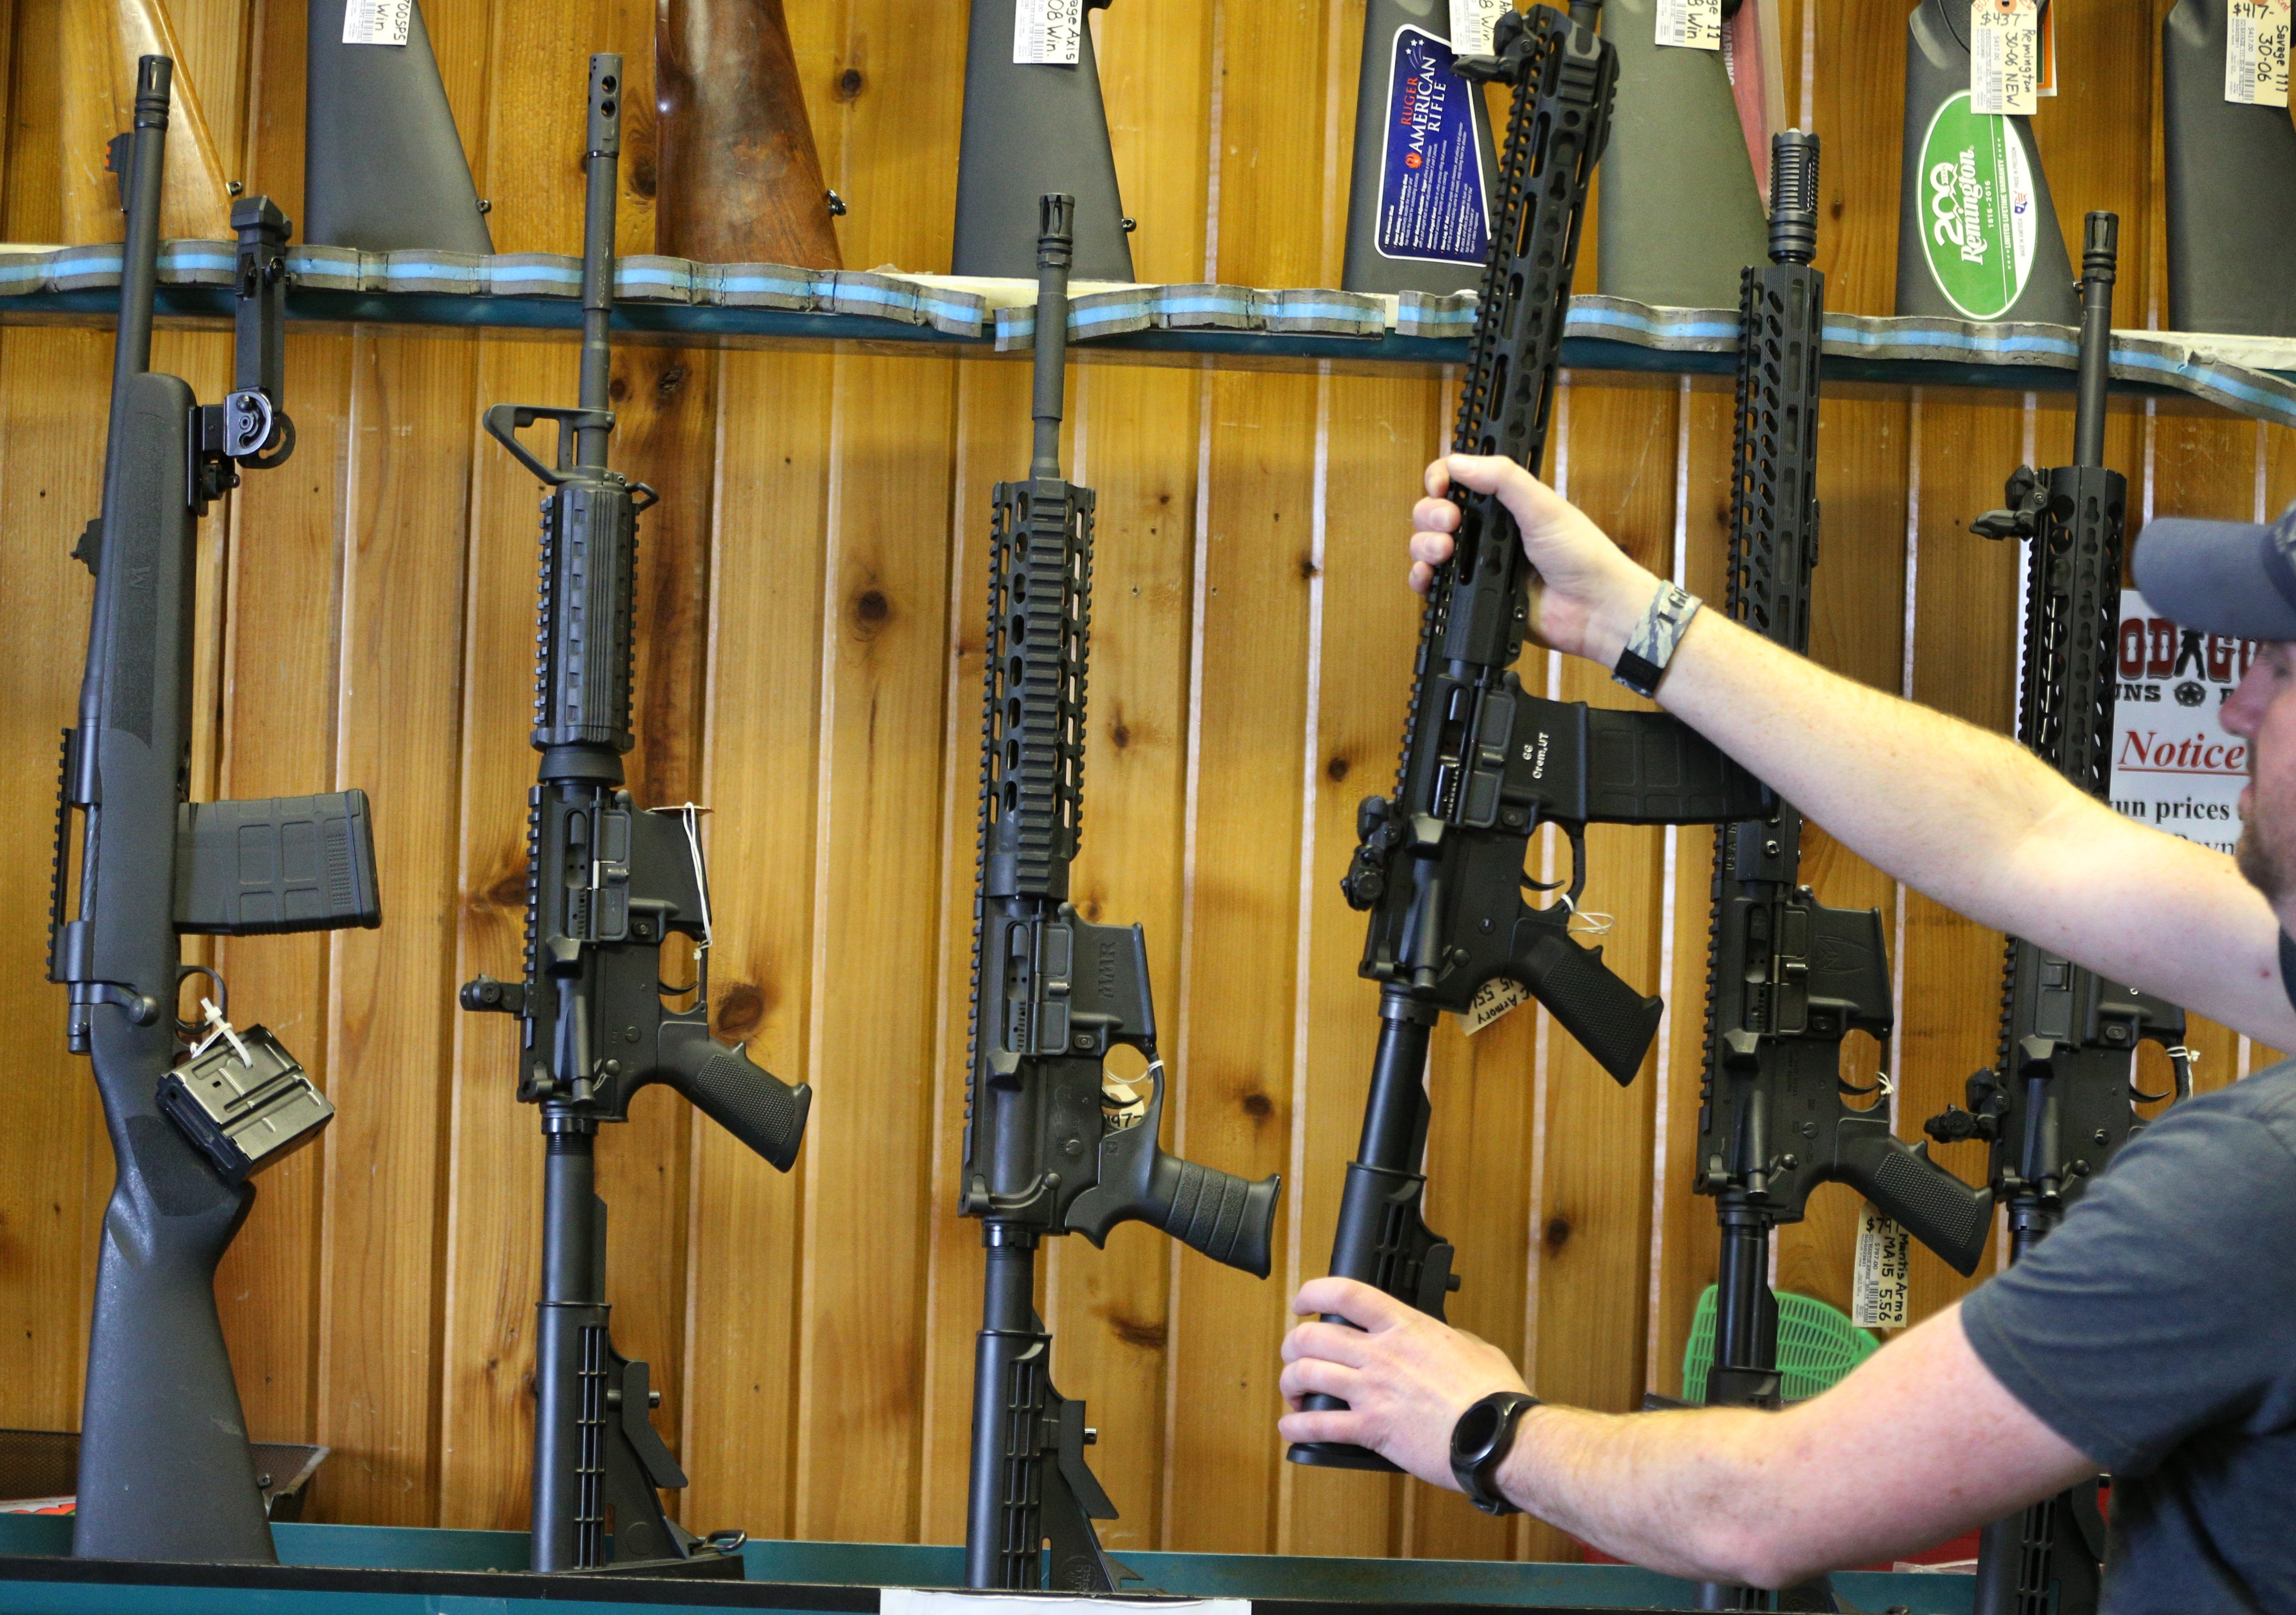 OREM, UT - FEBRUARY 15: Semi-automatic AR-15's are for sale at Good Guys Guns & Range on February 15, 2018 in Orem, Utah. An AR-15 was used in the Marjory Stoneman Douglas High School shooting in Parkland, Florida. (George Frey/Getty Images)